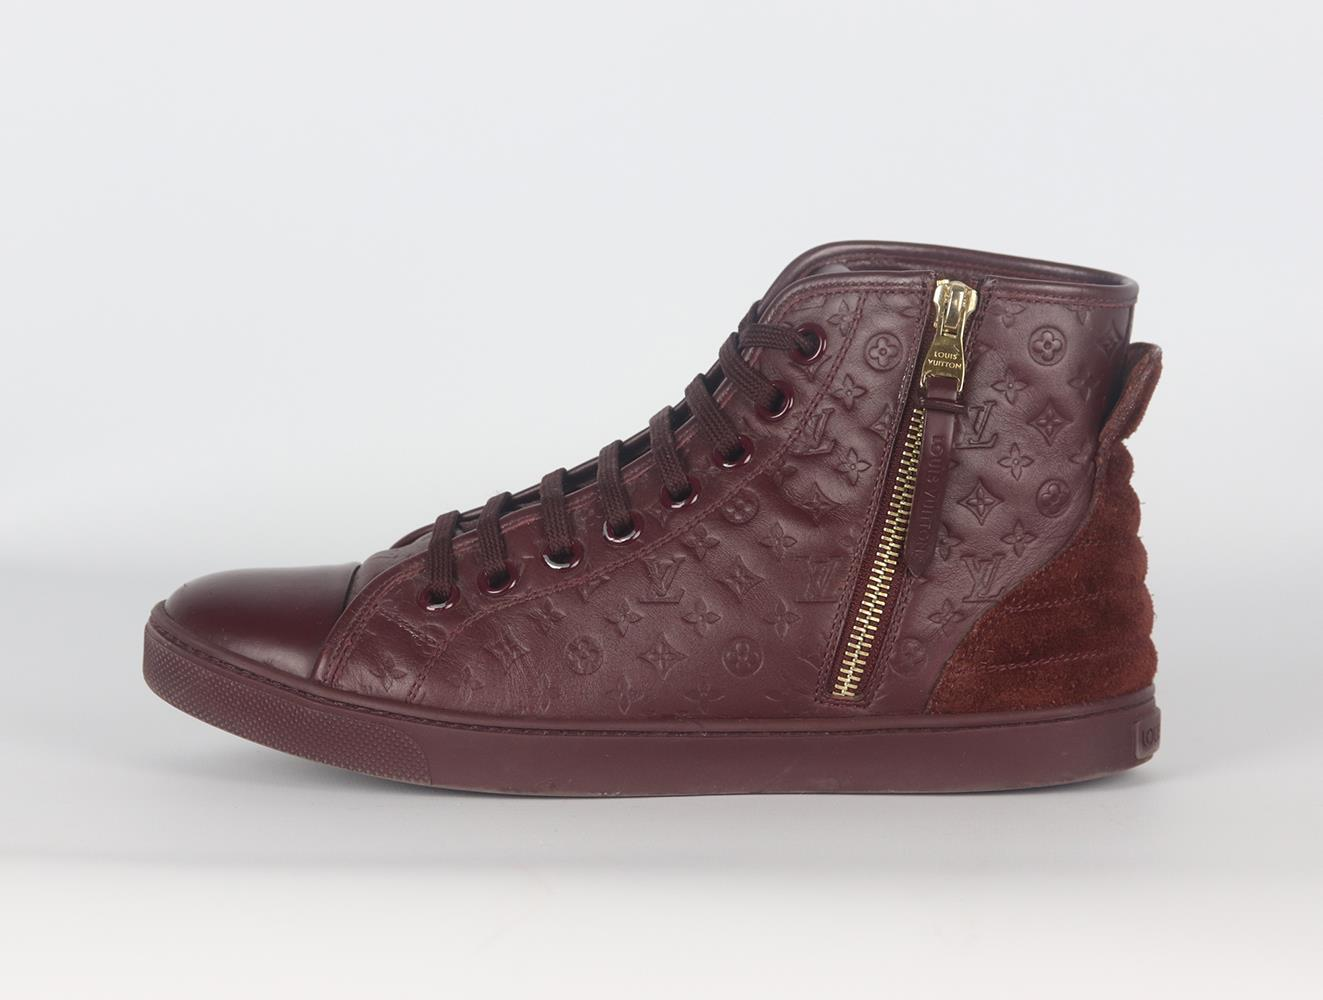 LOUIS VUITTON PUNCHY LOGO EMBOSSED LEATHER AND SUEDE SNEAKERS EU 38 UK 5 US 8